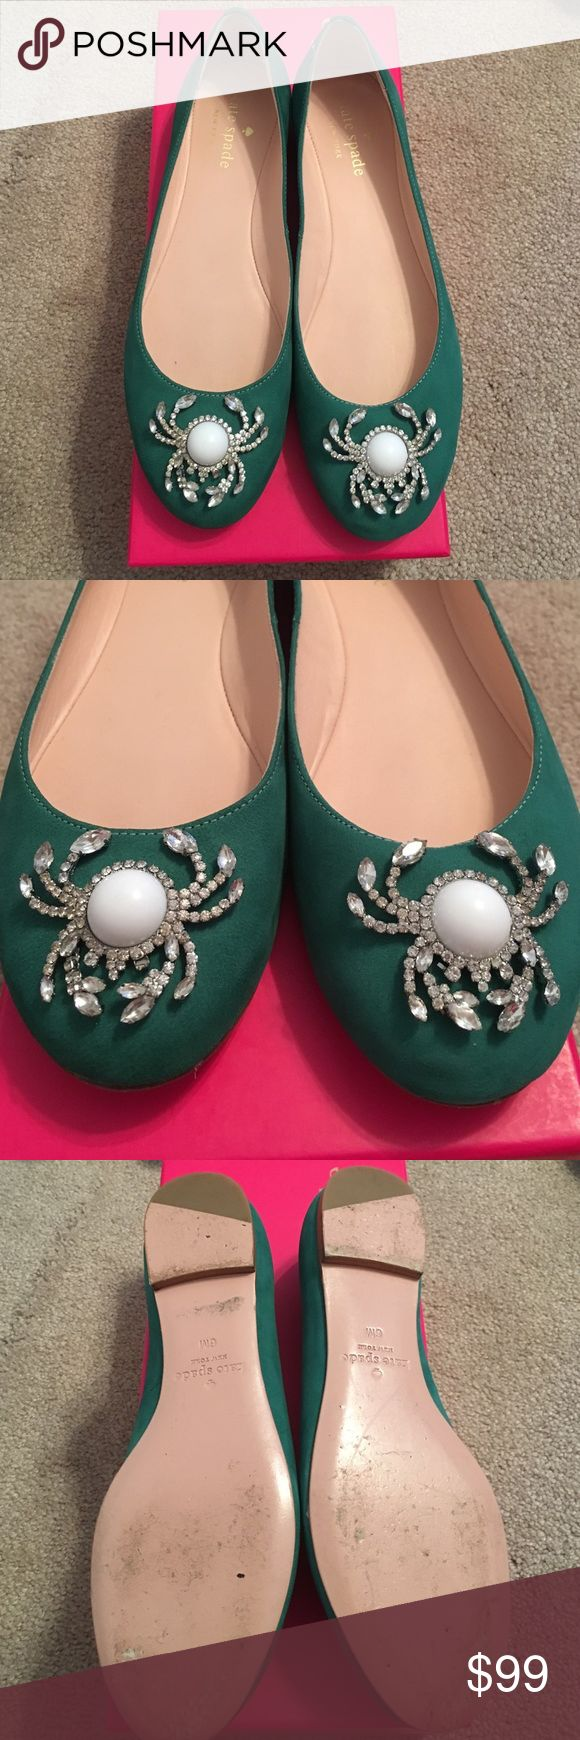 Kate Spade Teal Flats Kate Spade Teal Crab Embellished Flats. Worn once for a family photo. They look brand new except for minor wear on the sole. Offers welcome kate spade Shoes Flats & Loafers